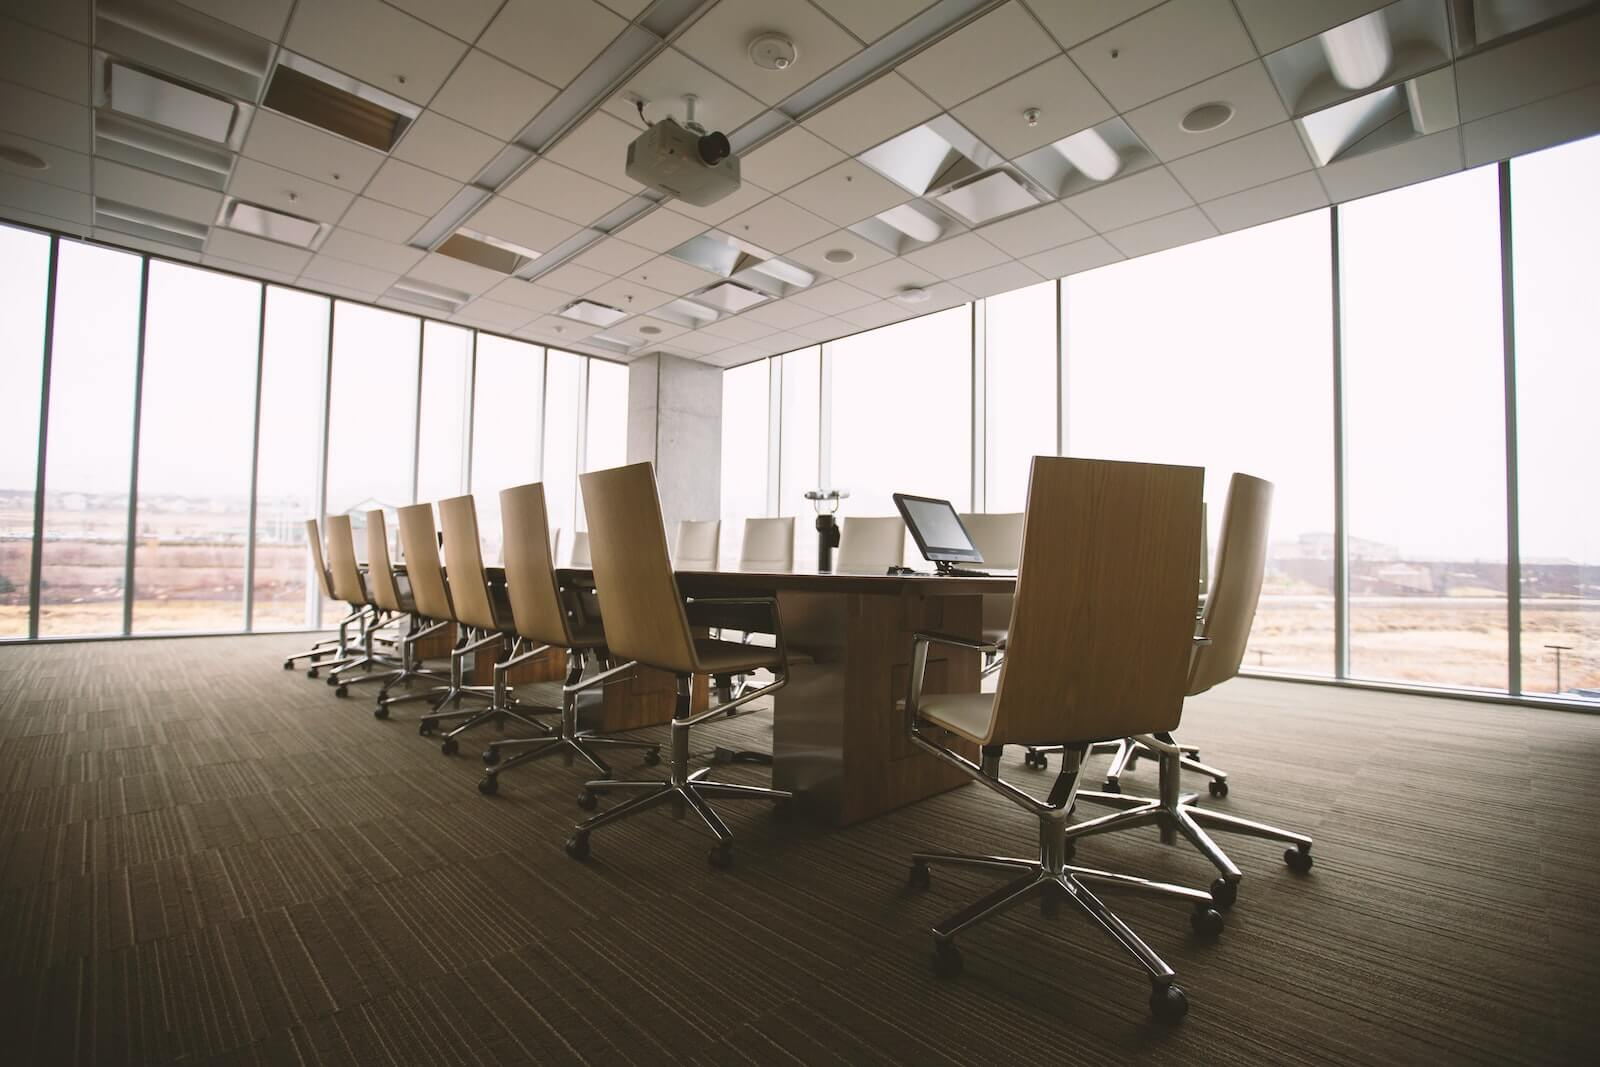 Whom Should You Want to Have on the Board of Directors of Your Corporation?